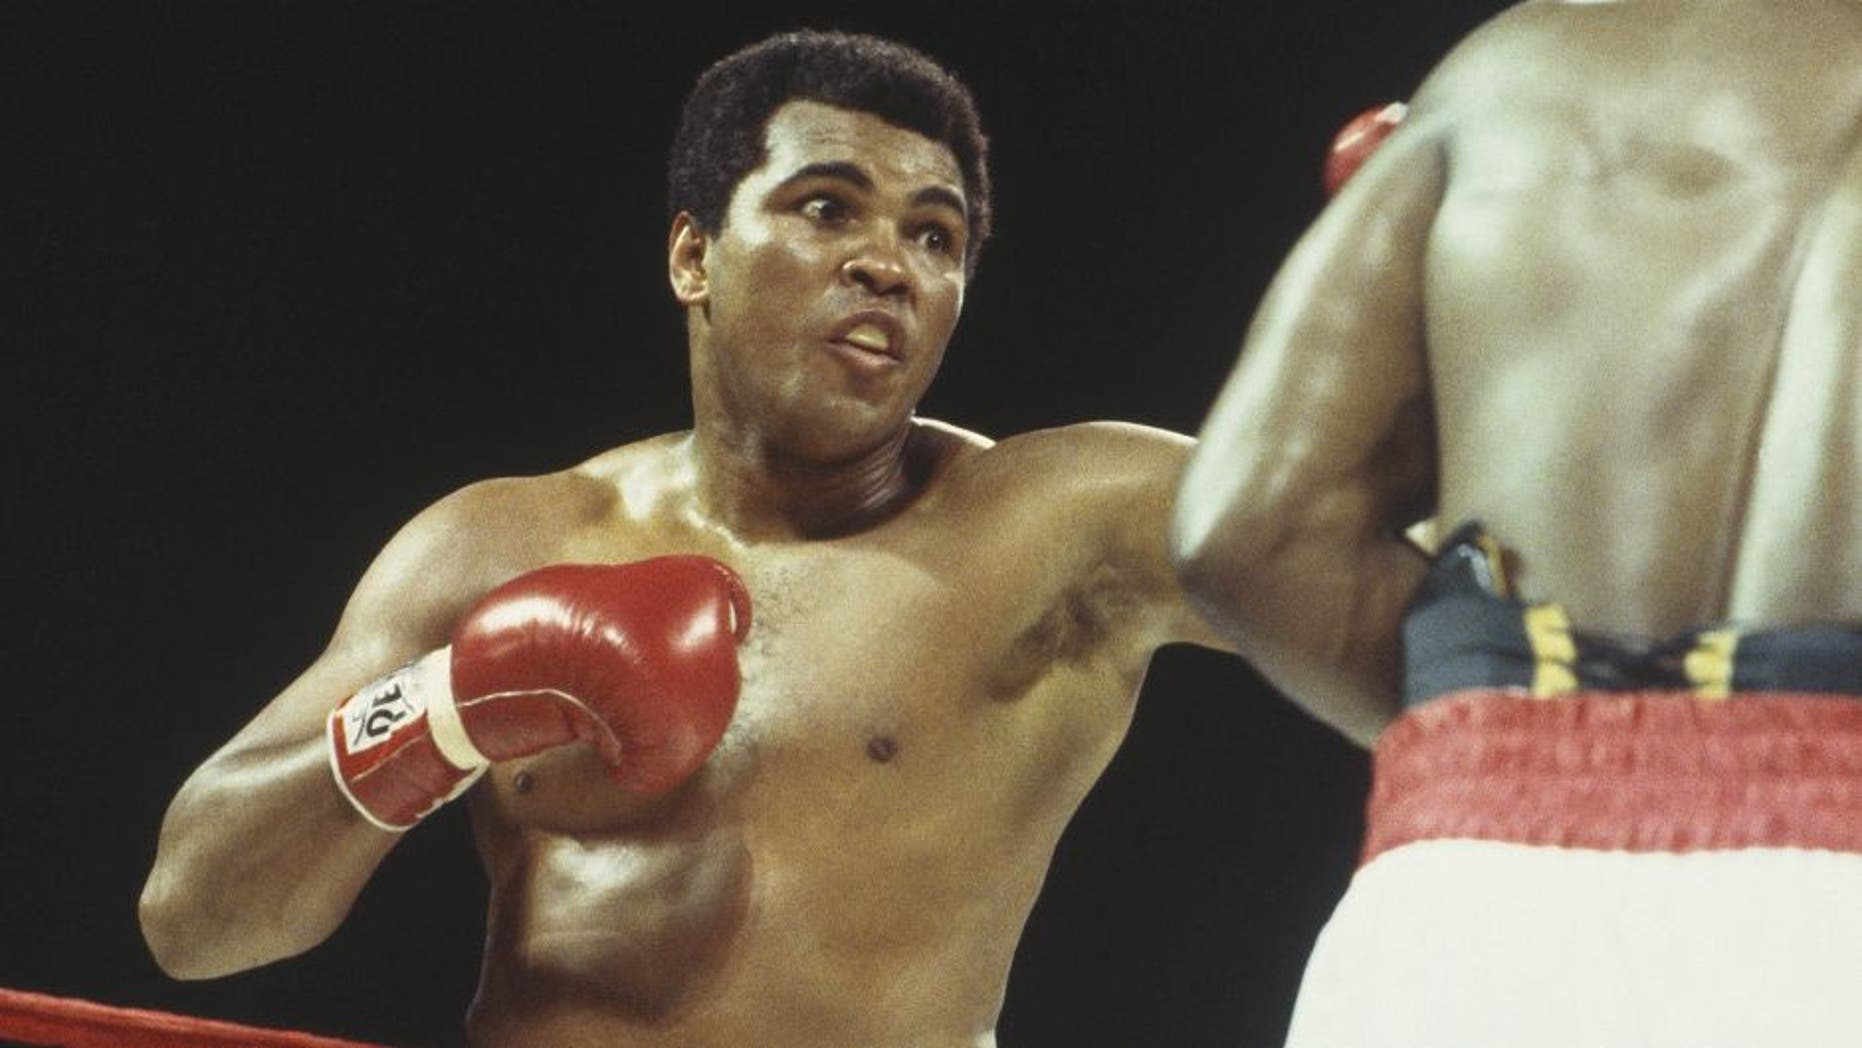 NASSAU - DECEMBER 11: Muhammad Ali throws a left hook at Trevor Berbick at the Queen Elizabeth Sports Centre on December 11, 1981 in Nassau, Bahamas. Berbick defeated Ali in the tenth round. (Focus on Sport/Getty Images)